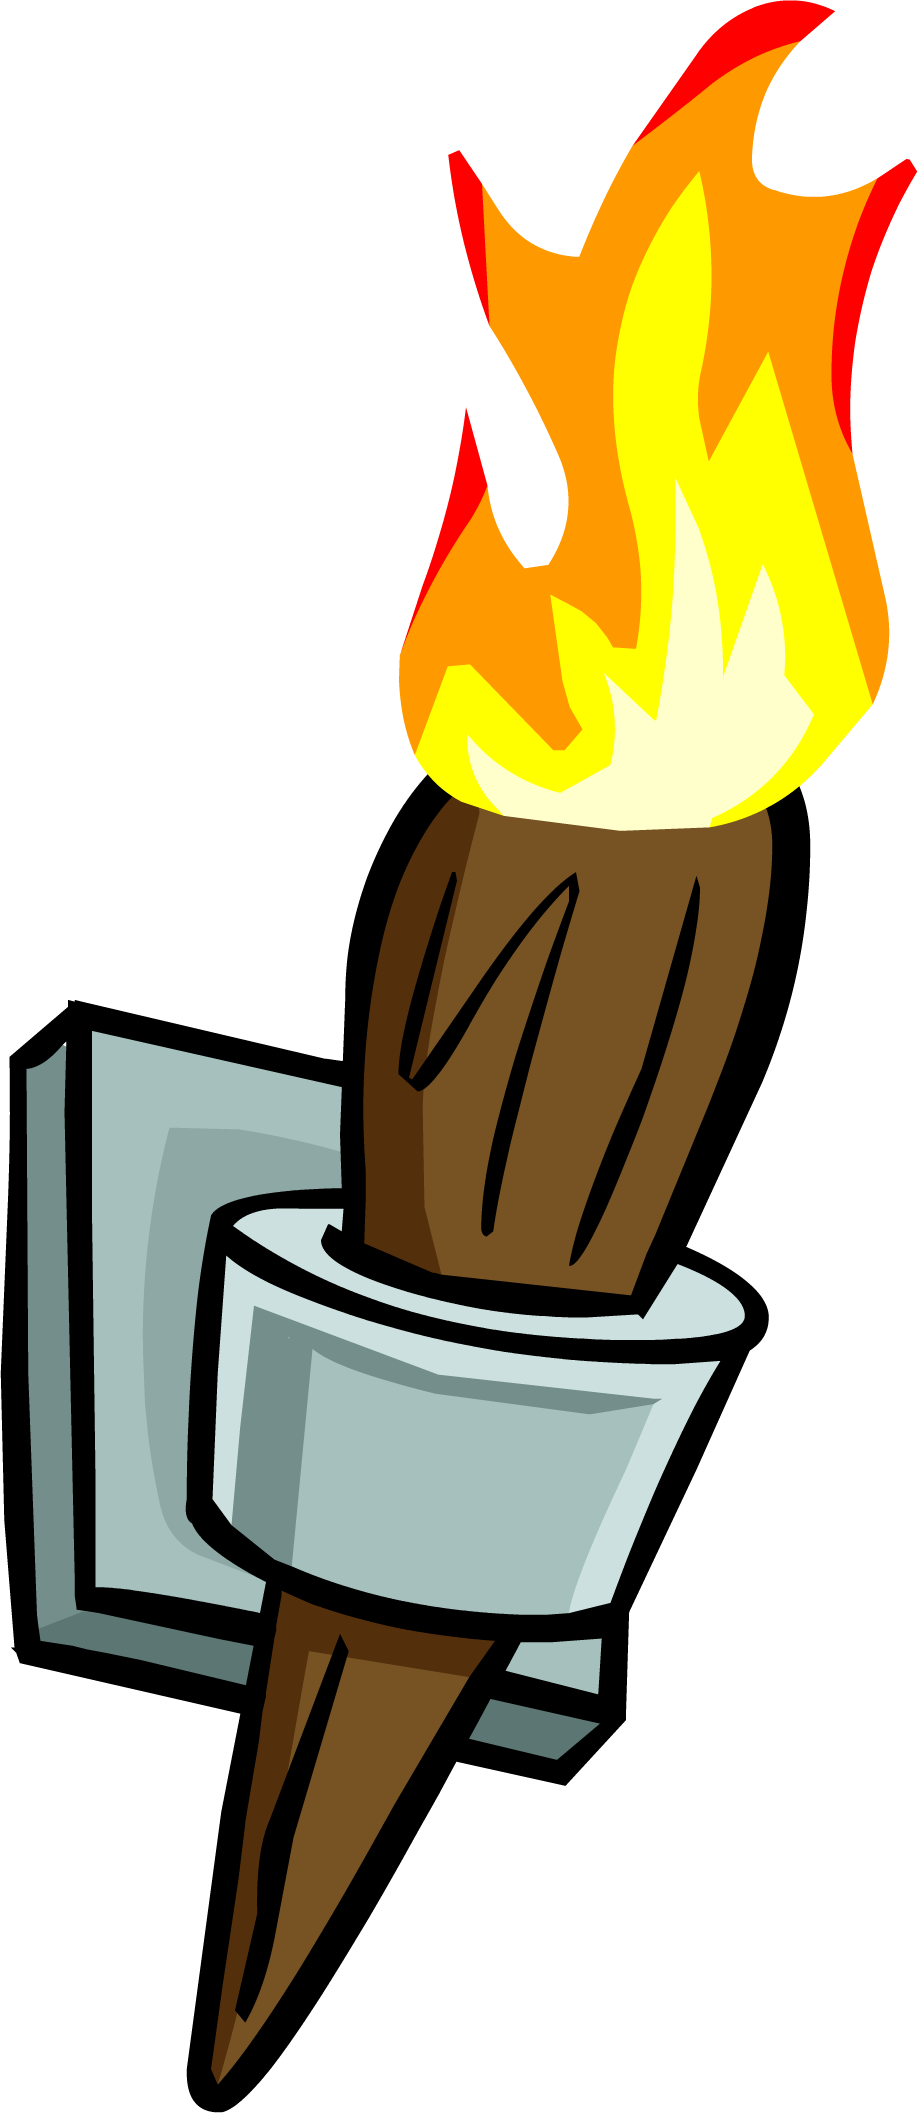 Image - Wall Torch.PNG   Club Penguin Wiki   FANDOM powered by Wikia for Sports Torch Png  181obs